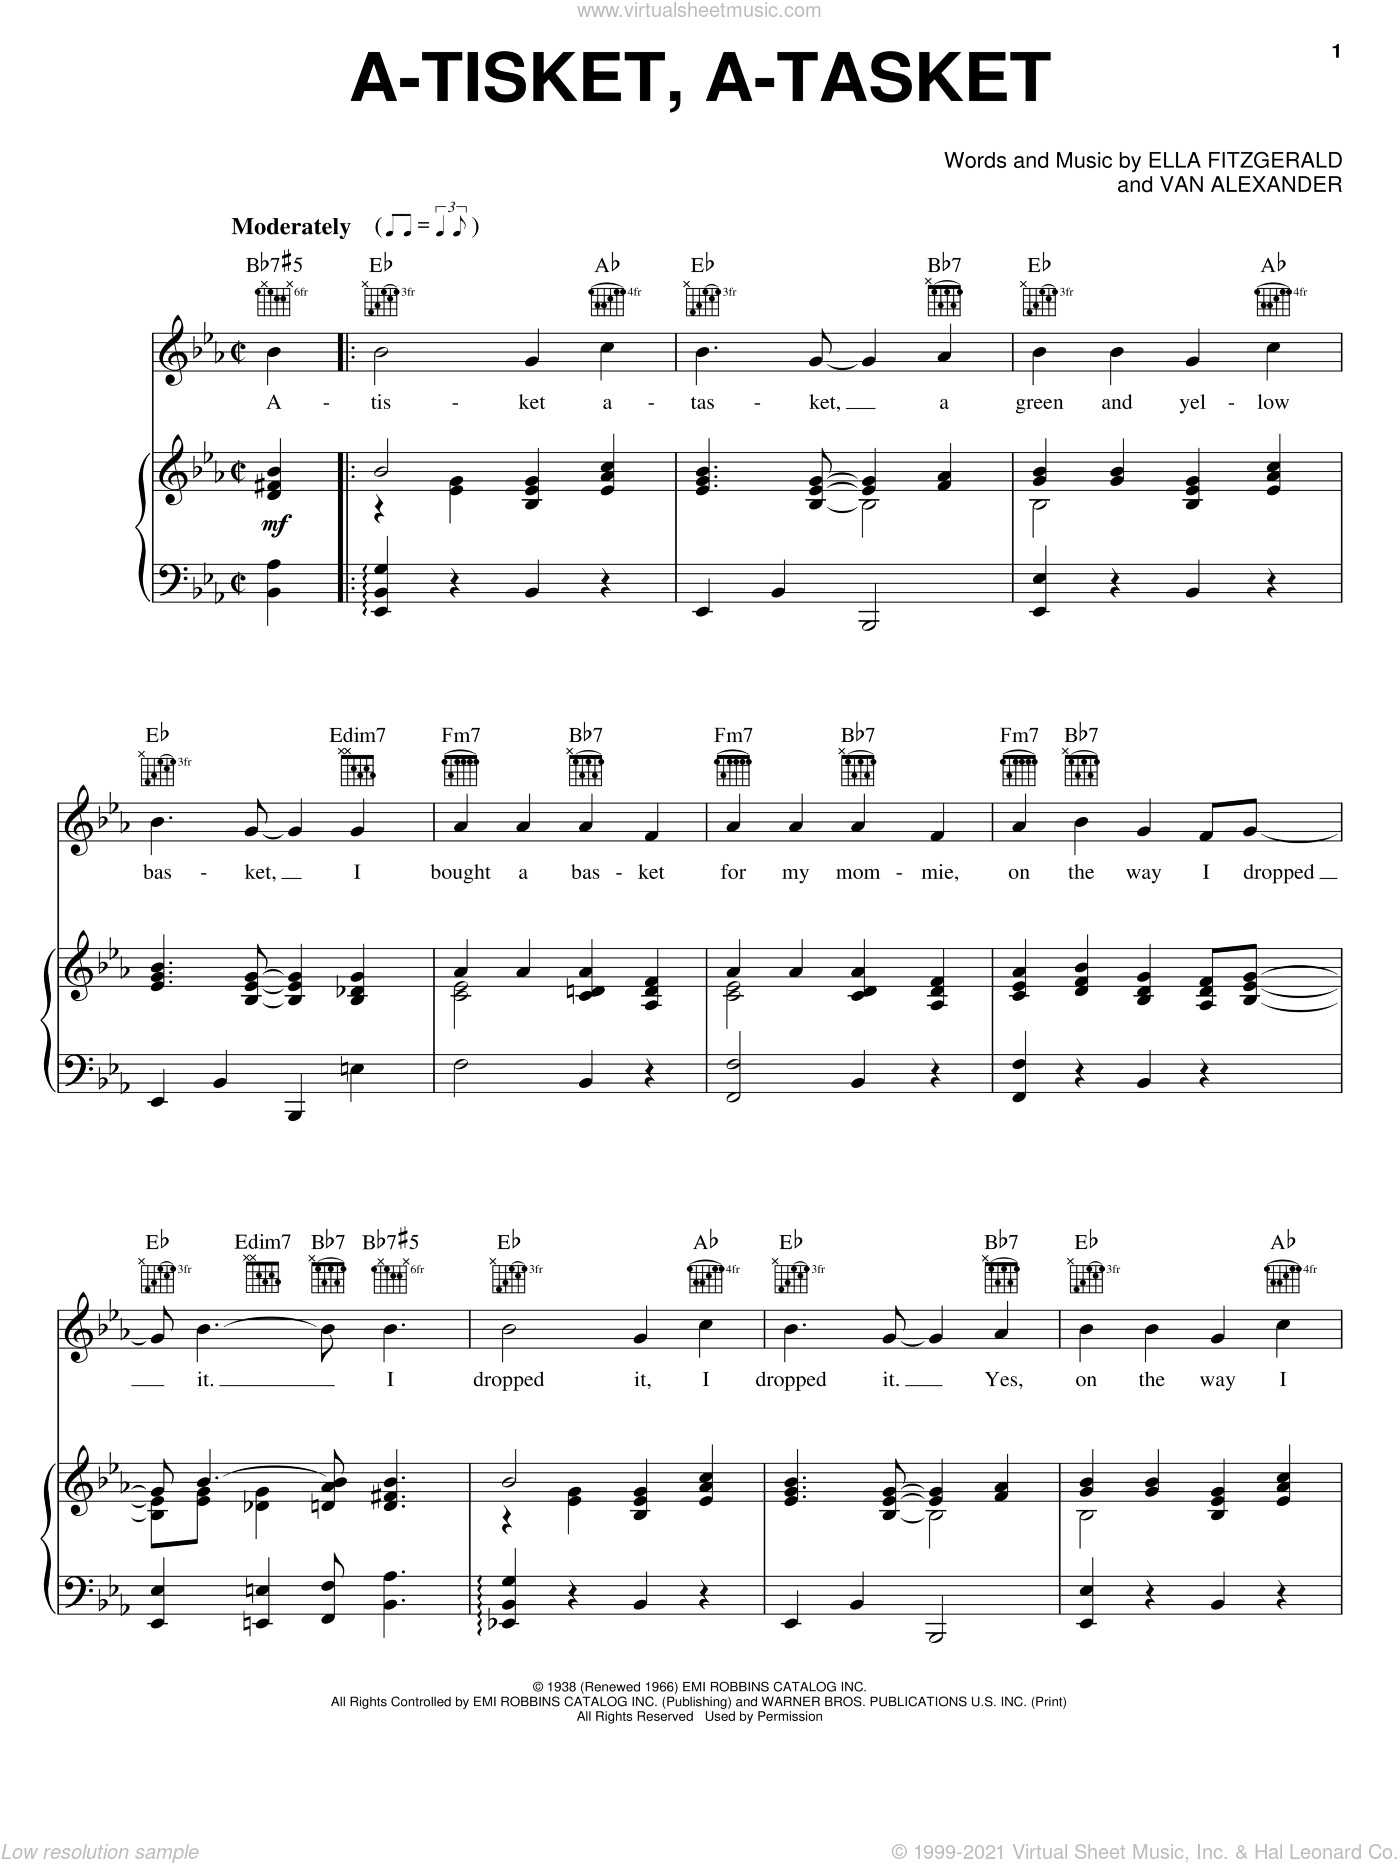 A-Tisket, A-Tasket sheet music for voice, piano or guitar by Van Alexander